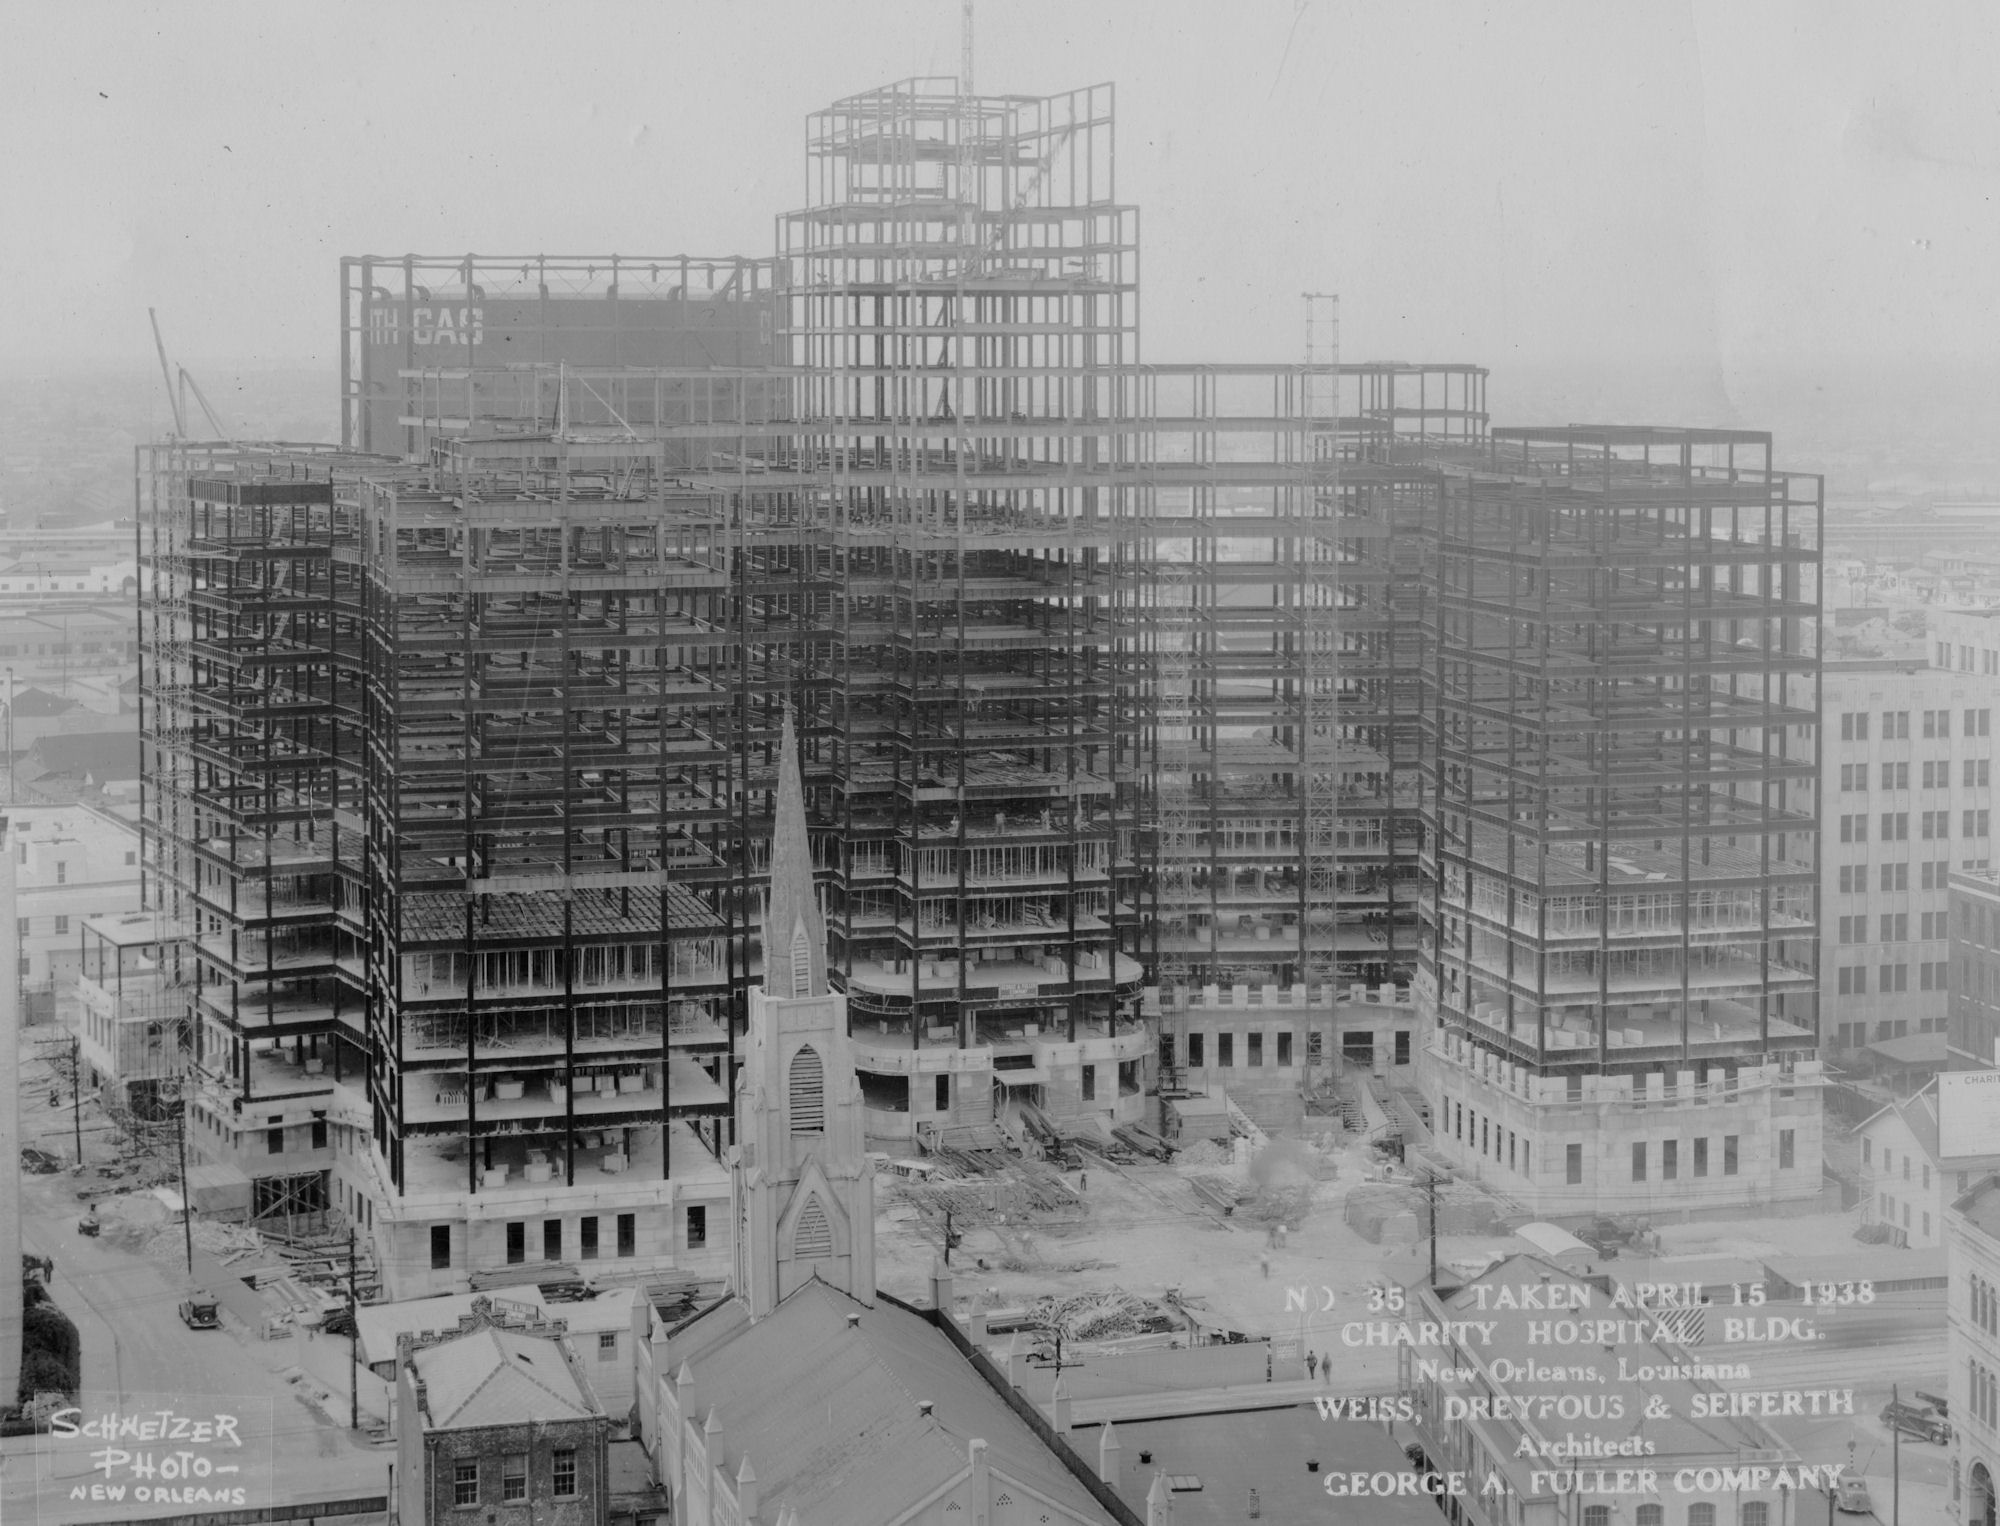 Image courtesy of Louisiana Division/City Archives, New Orleans Public Library